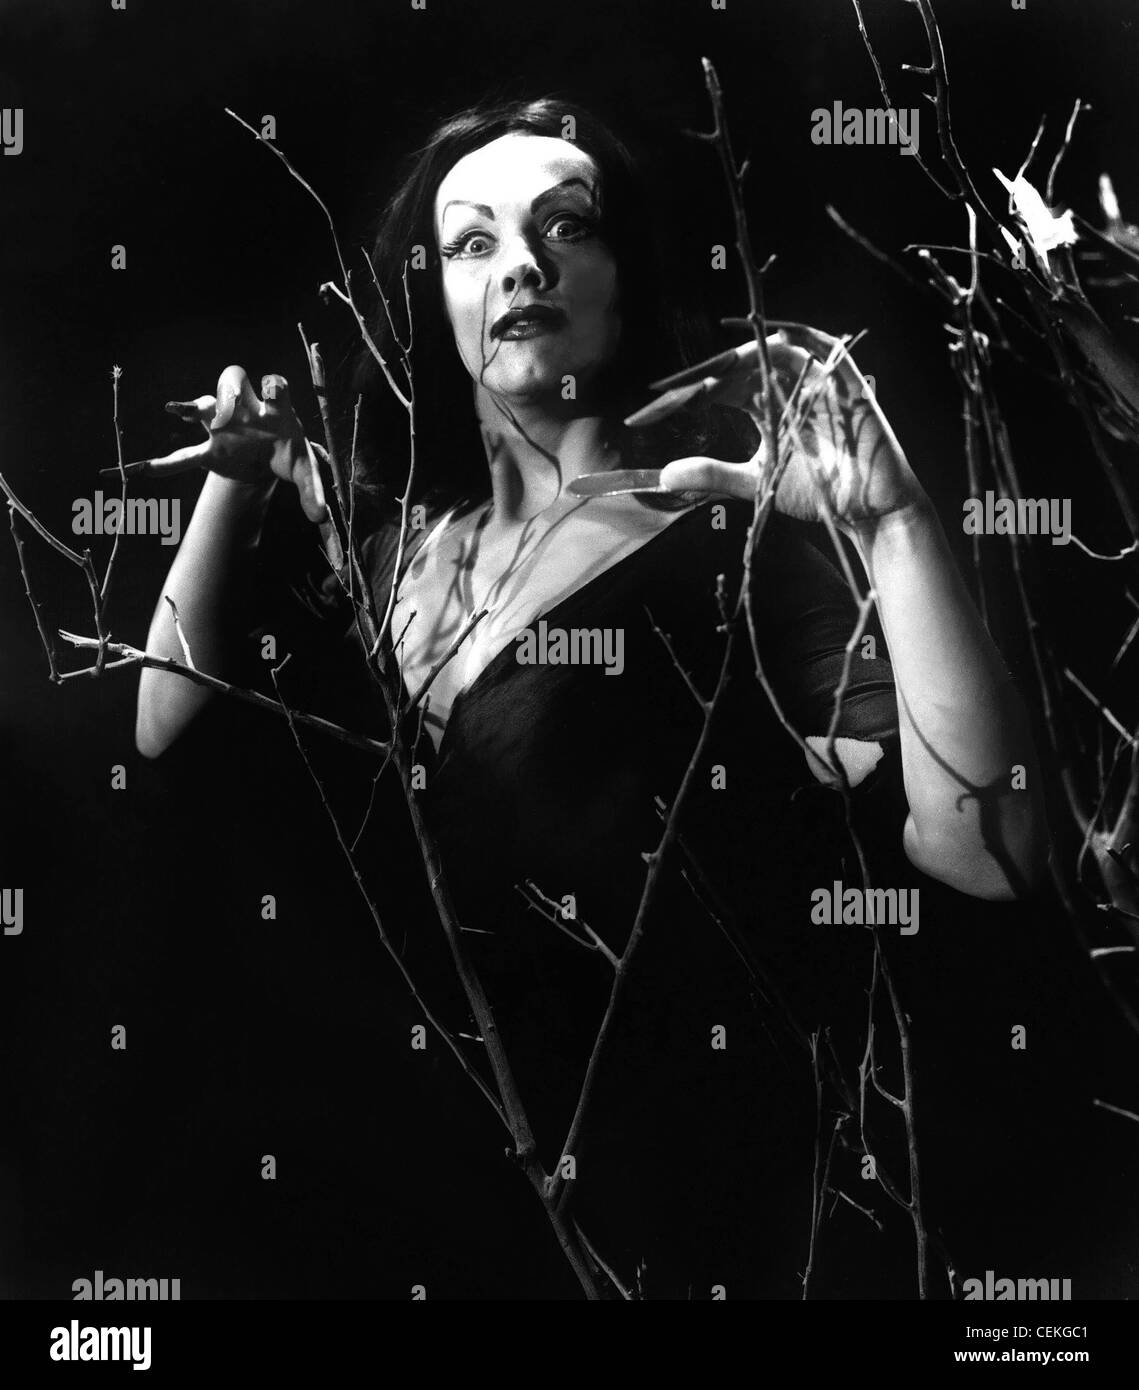 PLAN 9 FROM OUTER SPACE (1959) VAMPIRA EDWARD D. WOOD JR. (DIR) 010 MOVIESTORE COLLECTION LTD - Stock Image